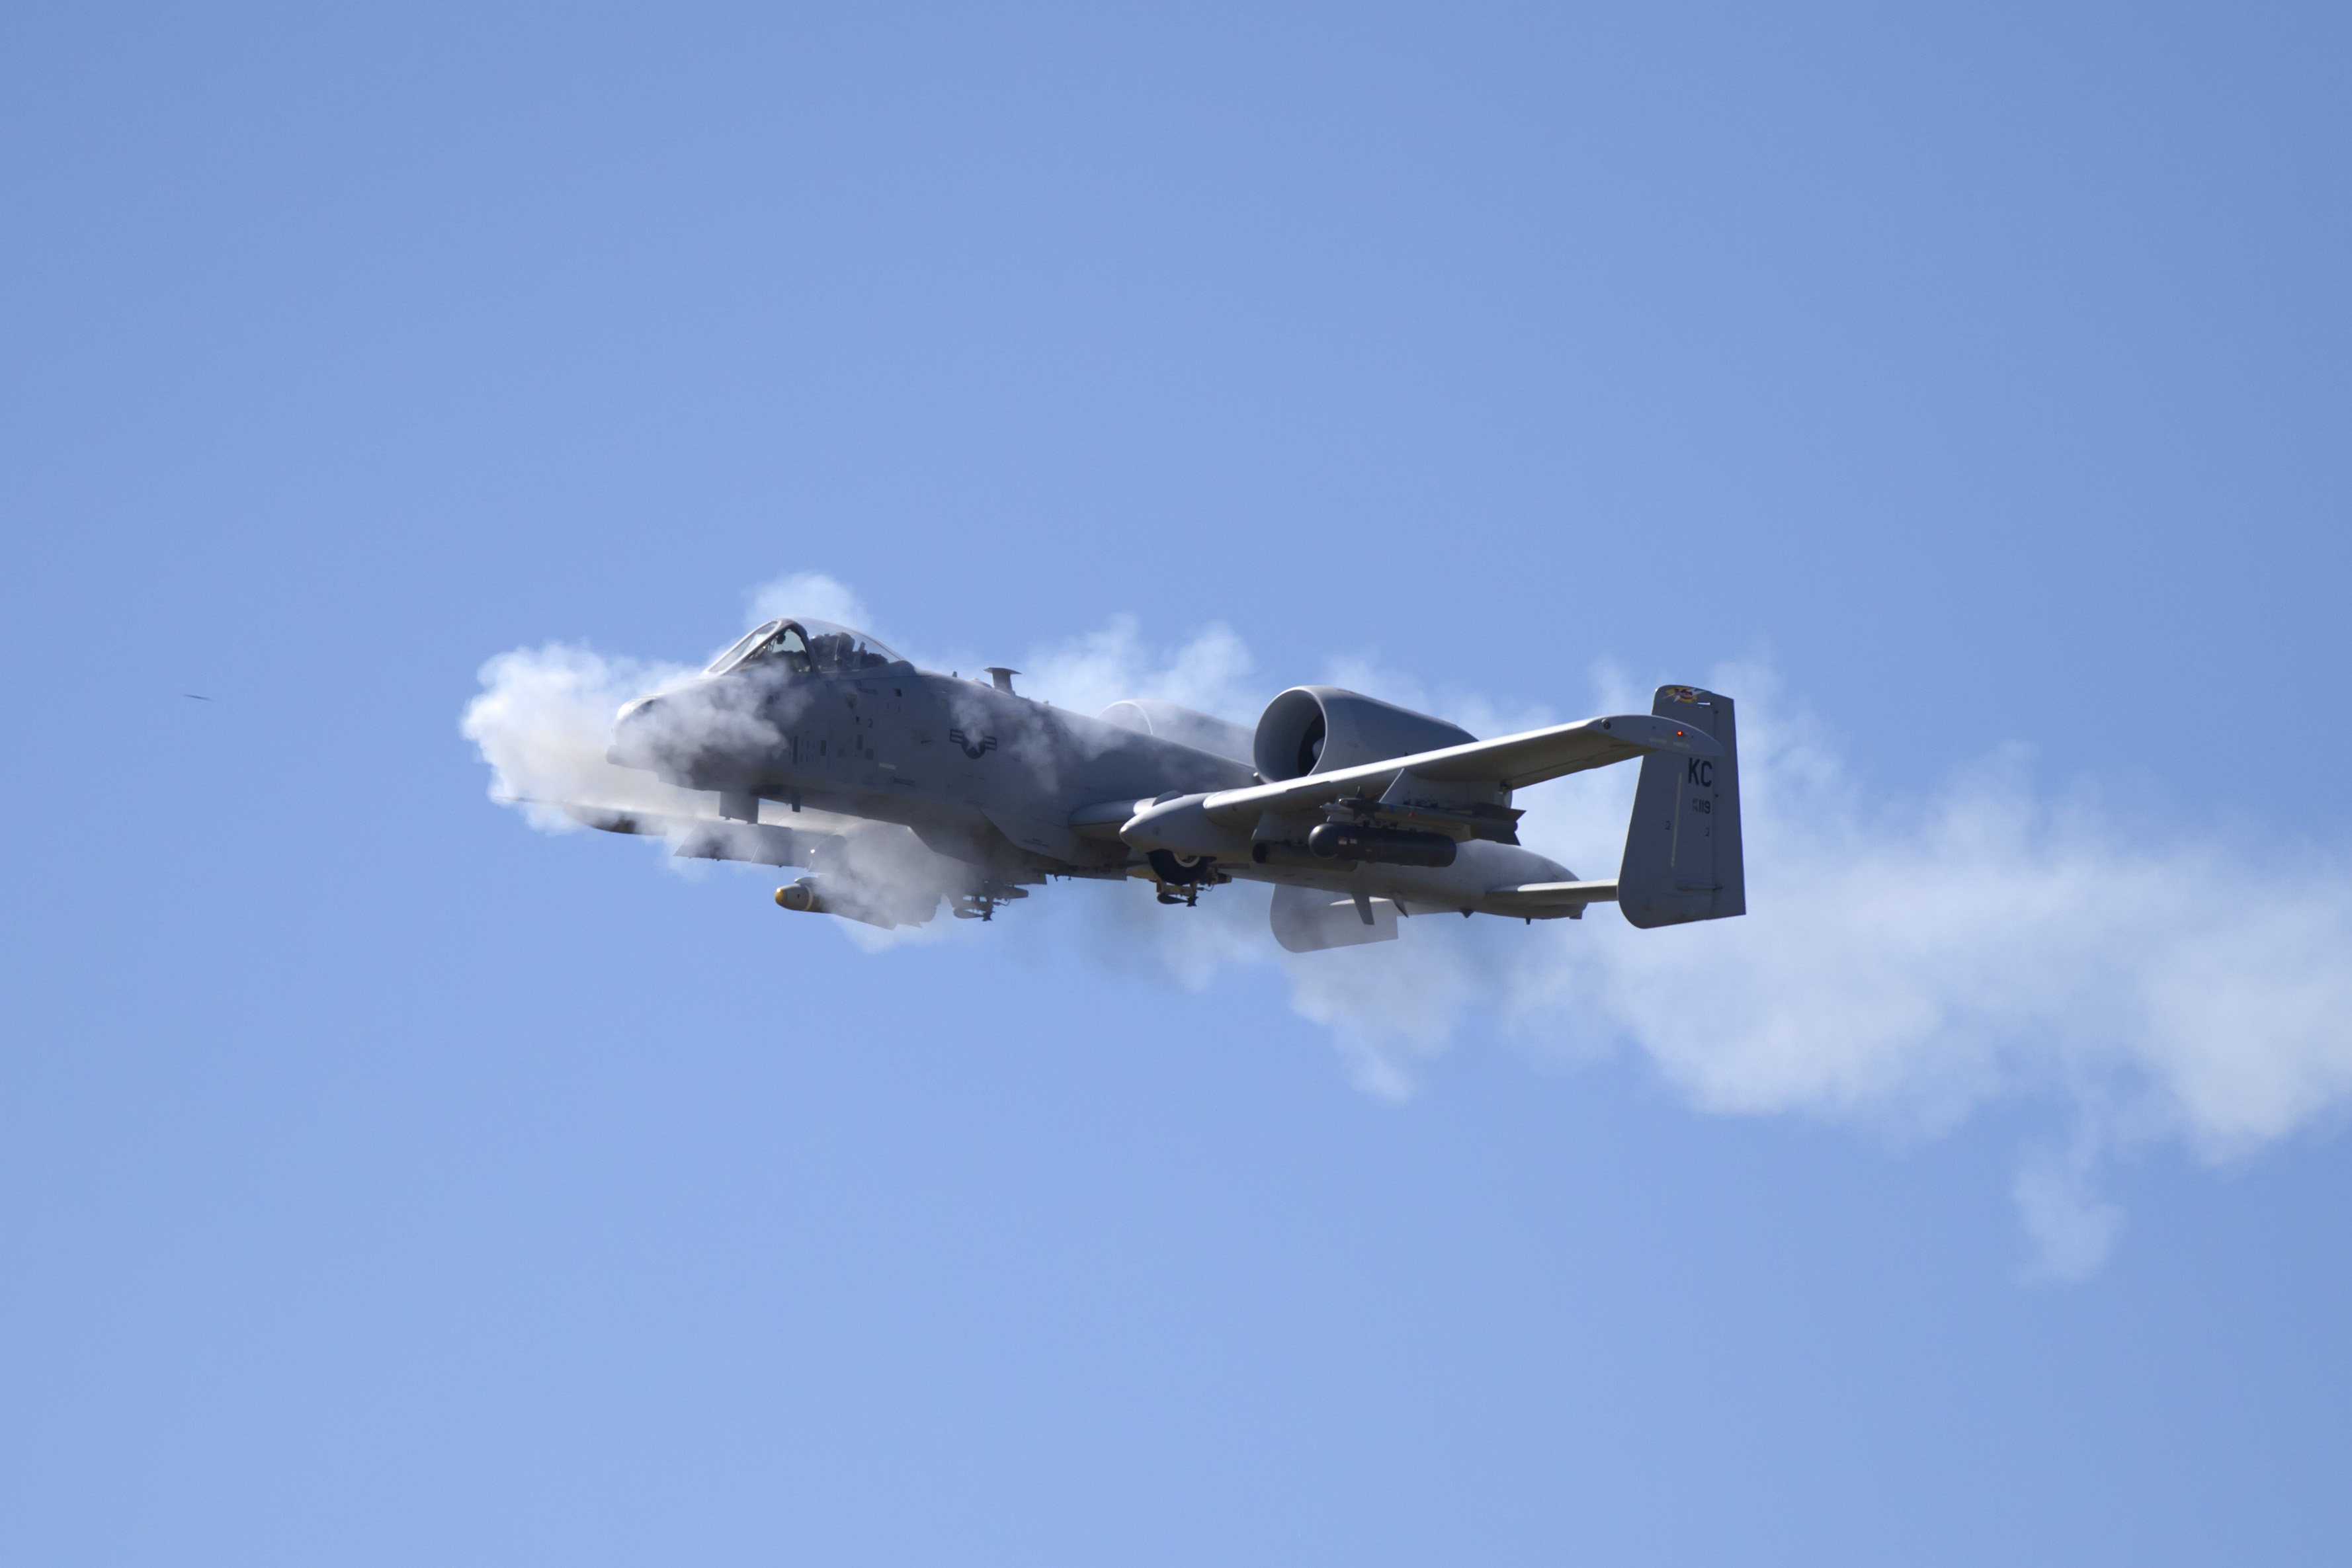 A-10 Firing its GAU-8 30mm cannon. Live fire demo hardwood bombing range WI.